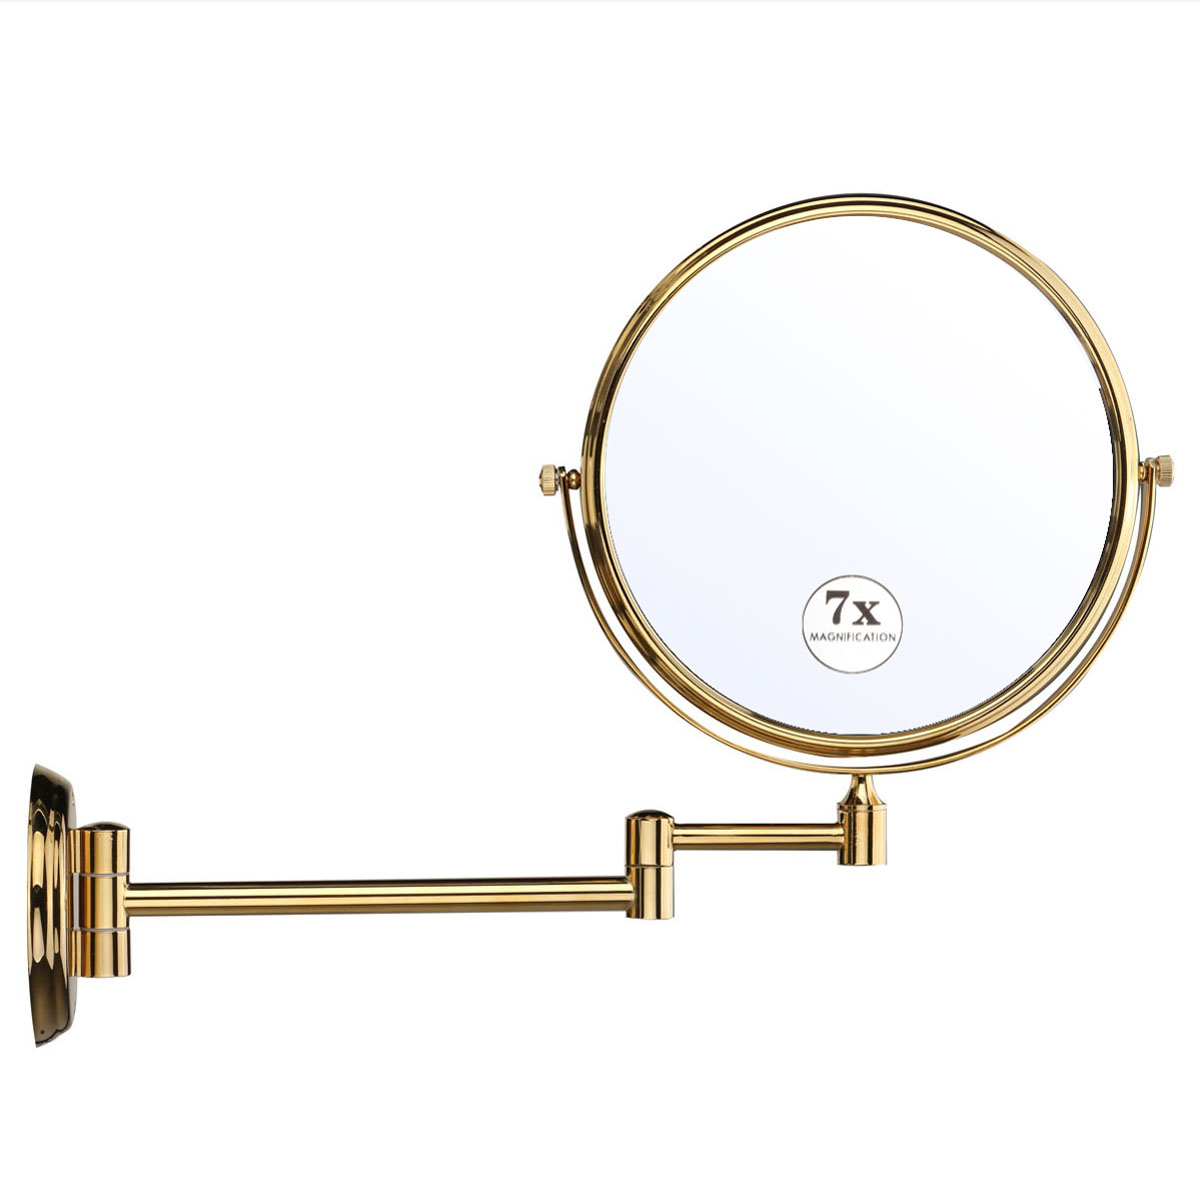 7x Magnifying Hair Mirror 8 Dual Side Brass Round Folding Mirrors Vanity Bathroom Shave Wall Mounted Extend With Arm Mirror bath mirrors 8 double side brass shave makeup mirror chrome hotel wall mounted extend with arm round base 3x magnifying 1758